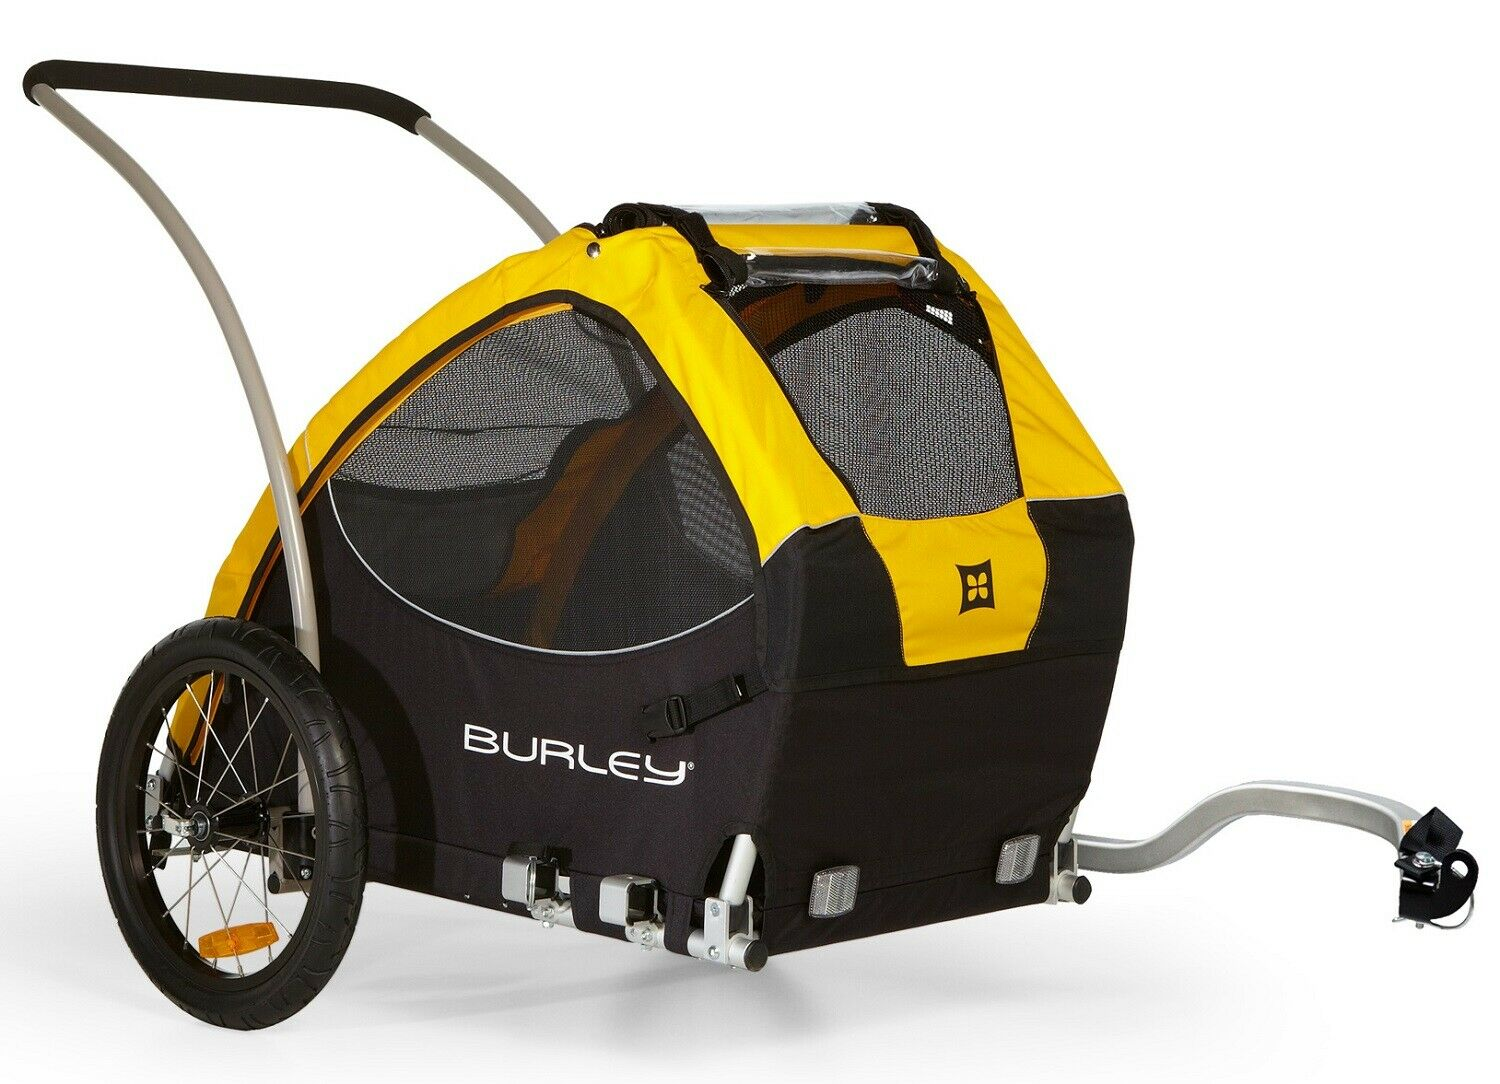 Burley Tail Wagon Dog Pet Bike Bicycle Trailer  75 LBS Capacity